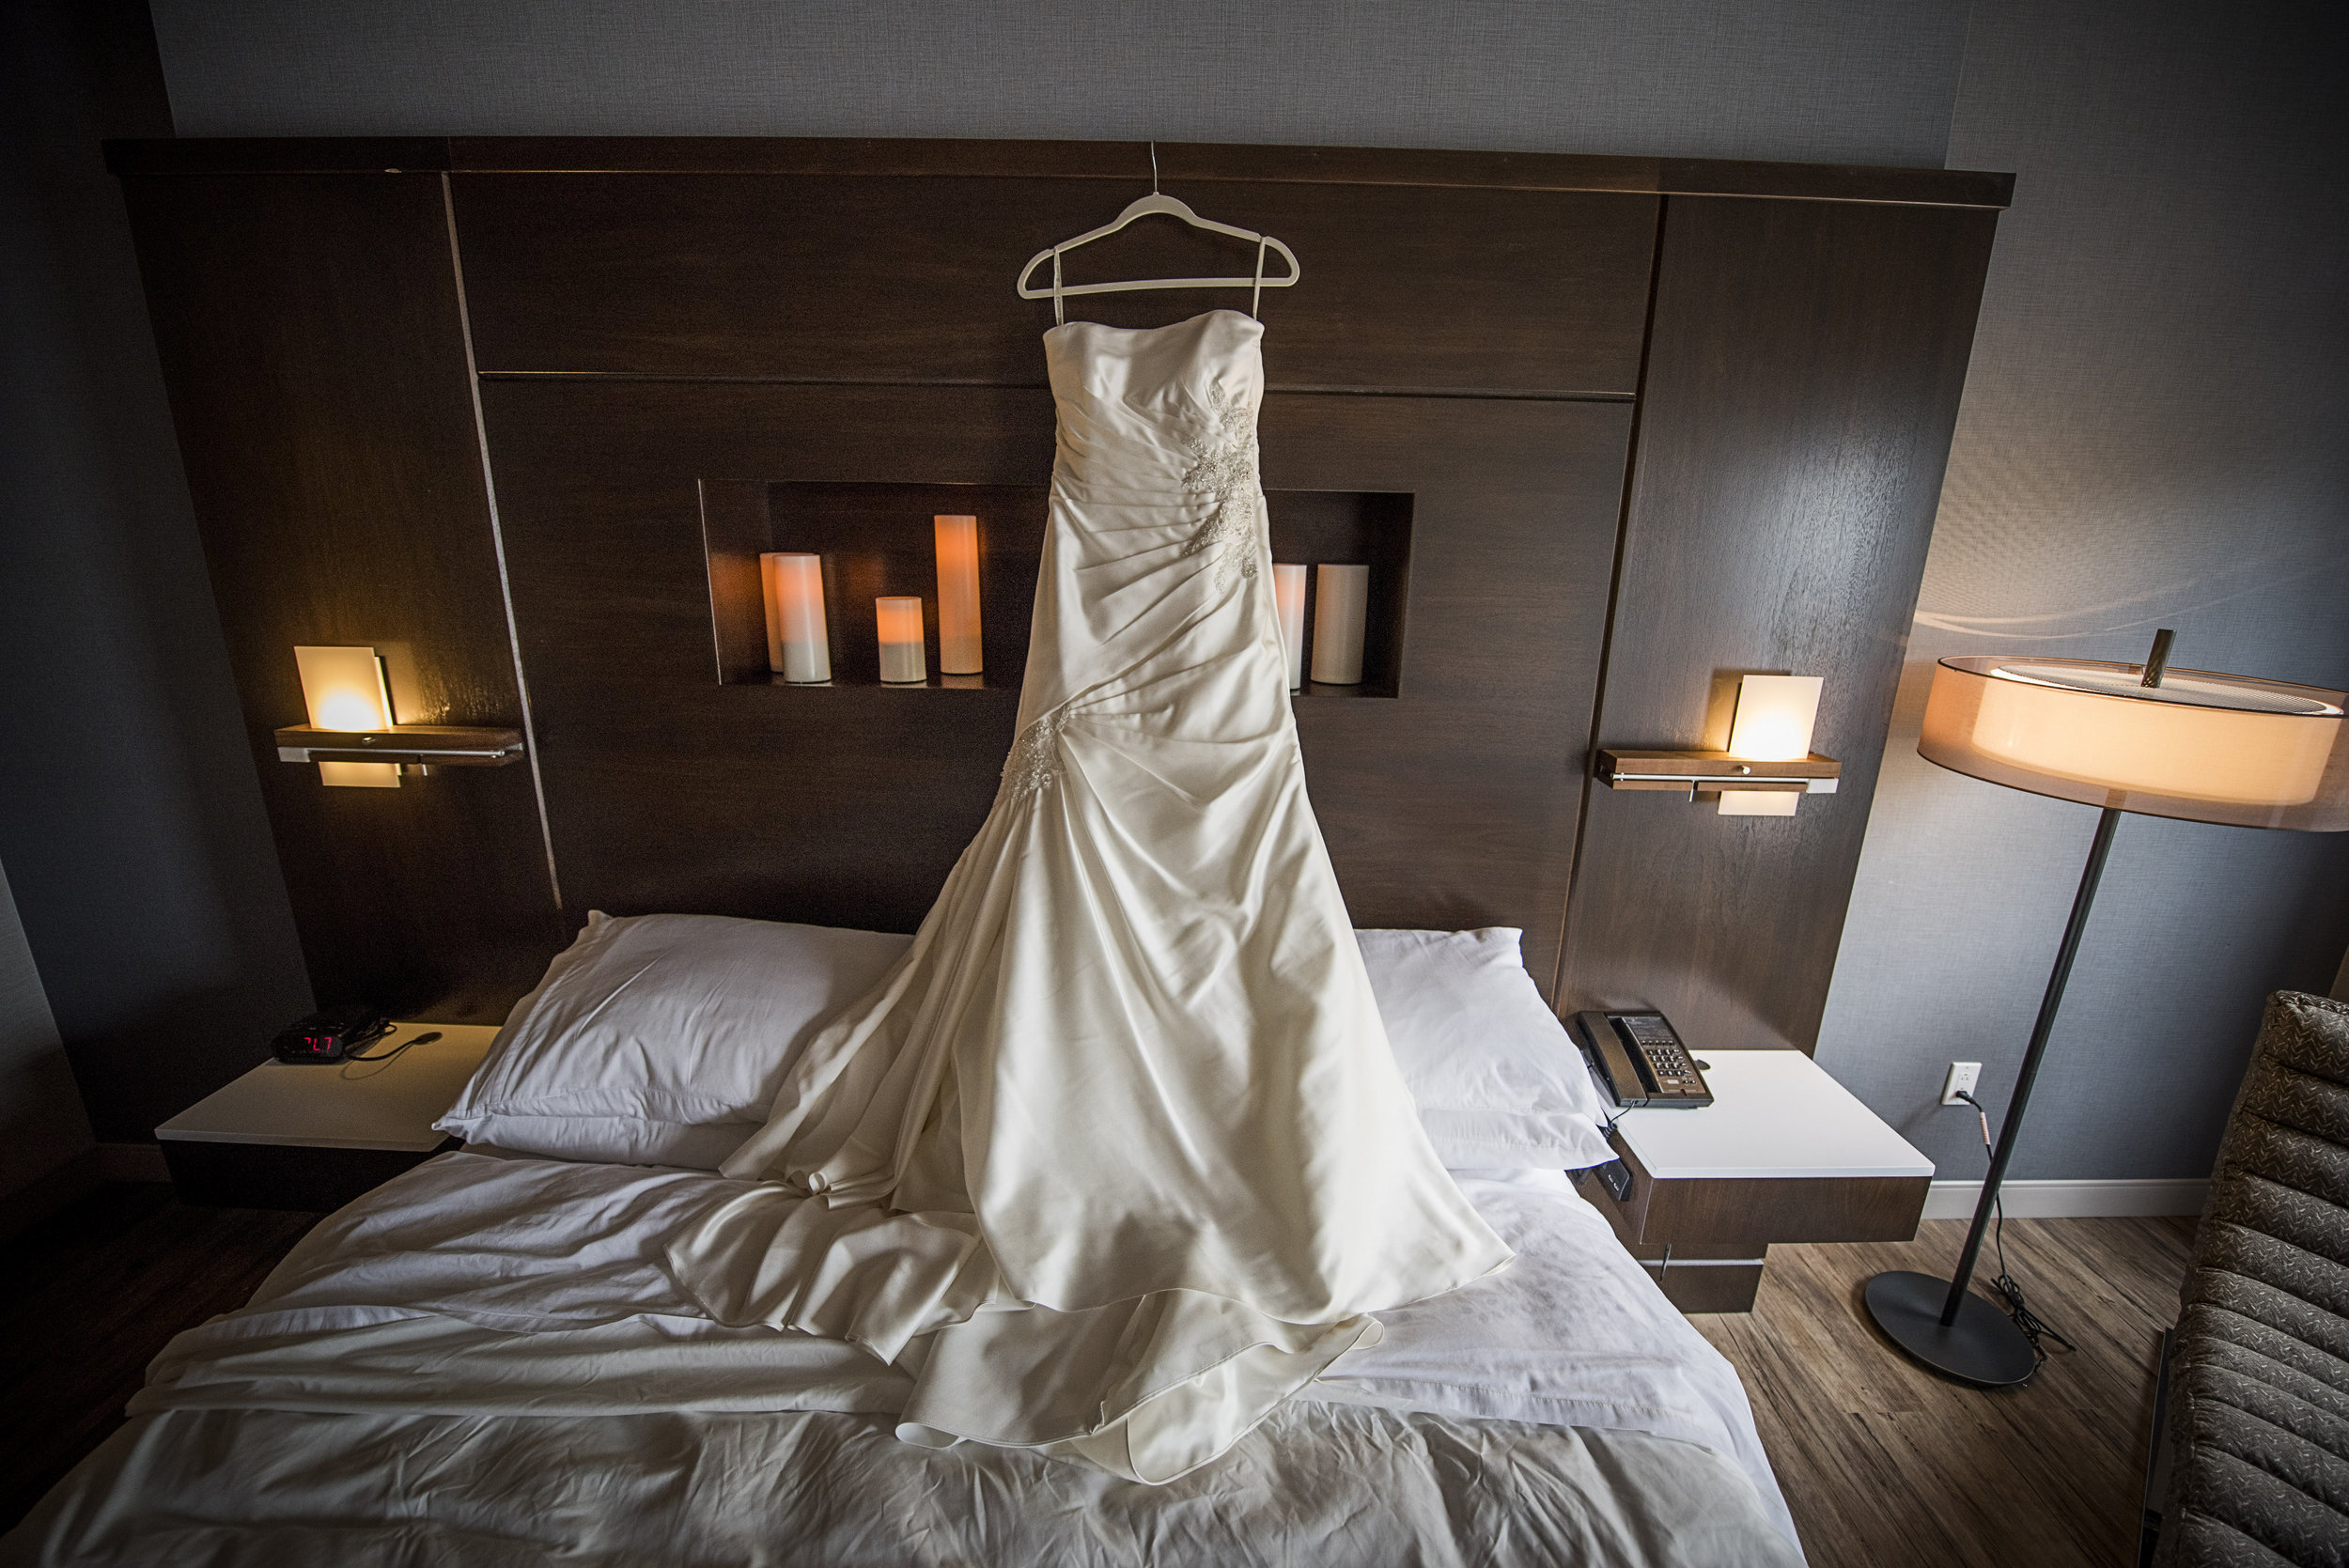 Prepare for your day in one of our stylish rooms or suites - FotoImpressions